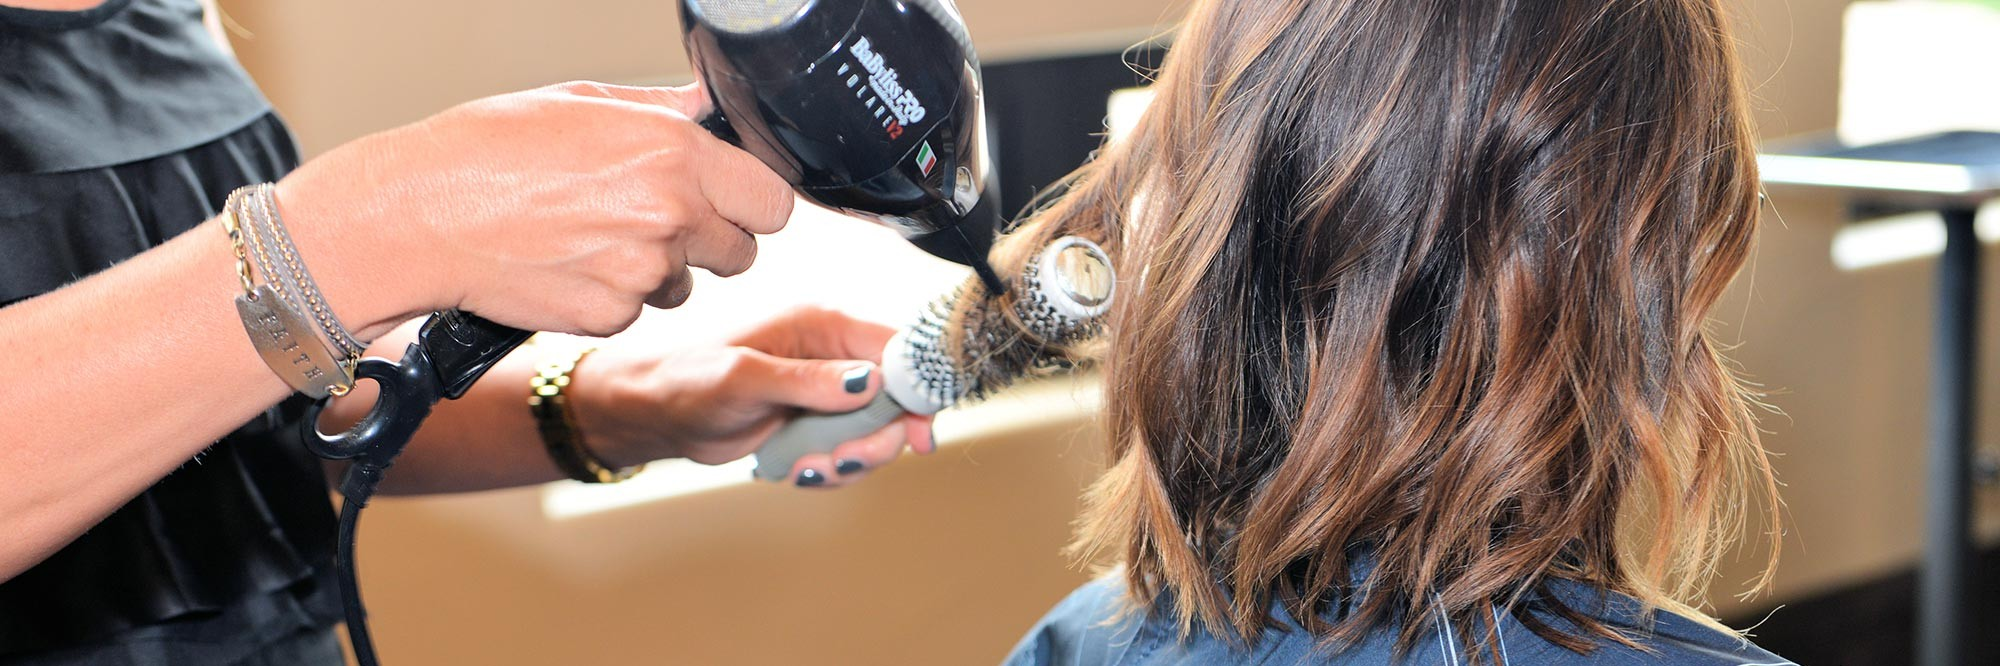 hair style services picture, hair being curled by hair dresser.